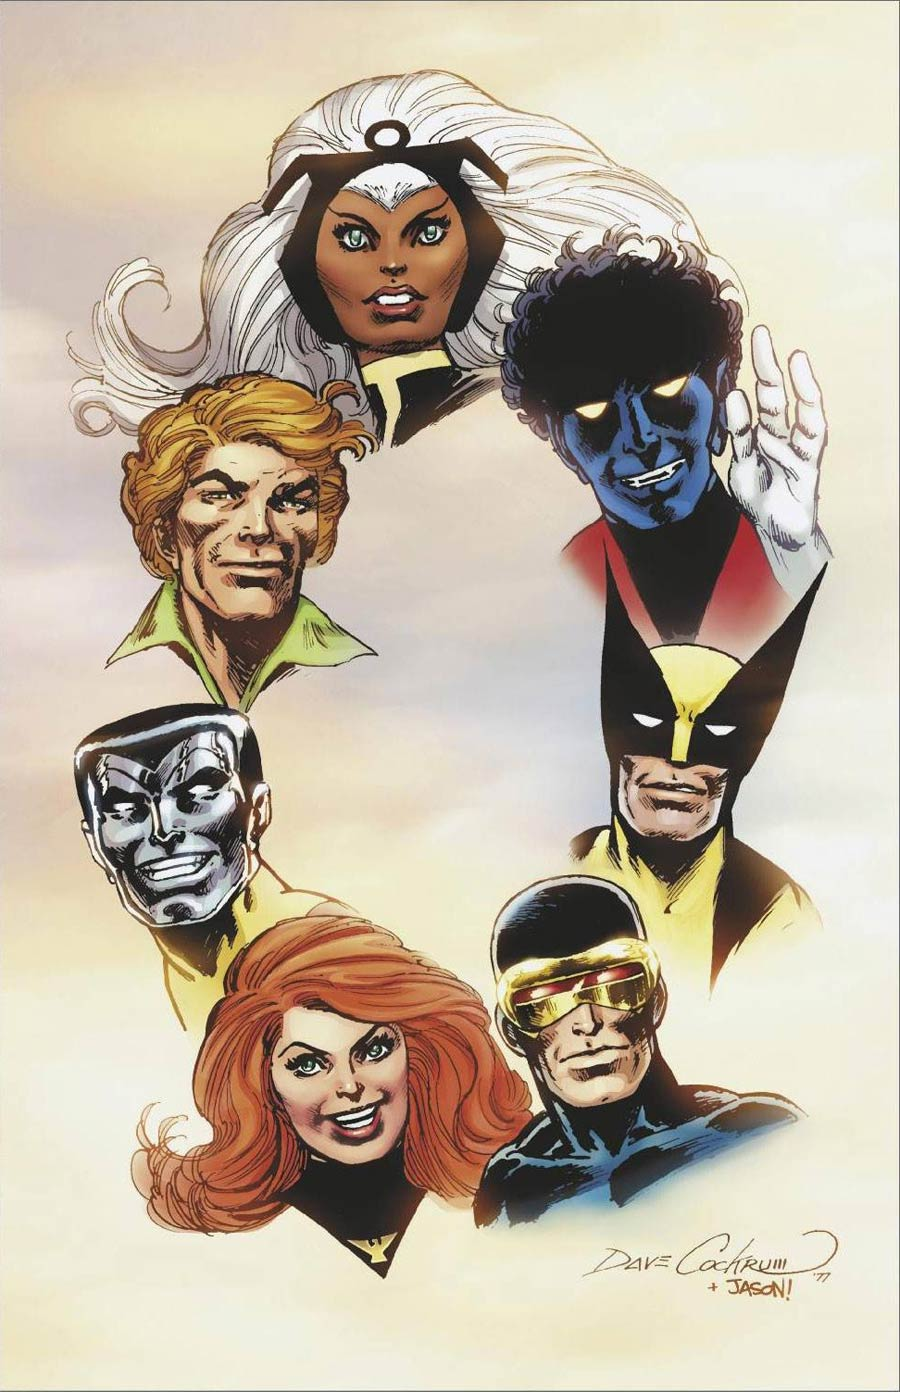 Giant-Size X-Men Tribute To Len Wein & Dave Cockrum One Shot Cover E Incentive Dave Cockrum Hidden Gem Virgin Cover